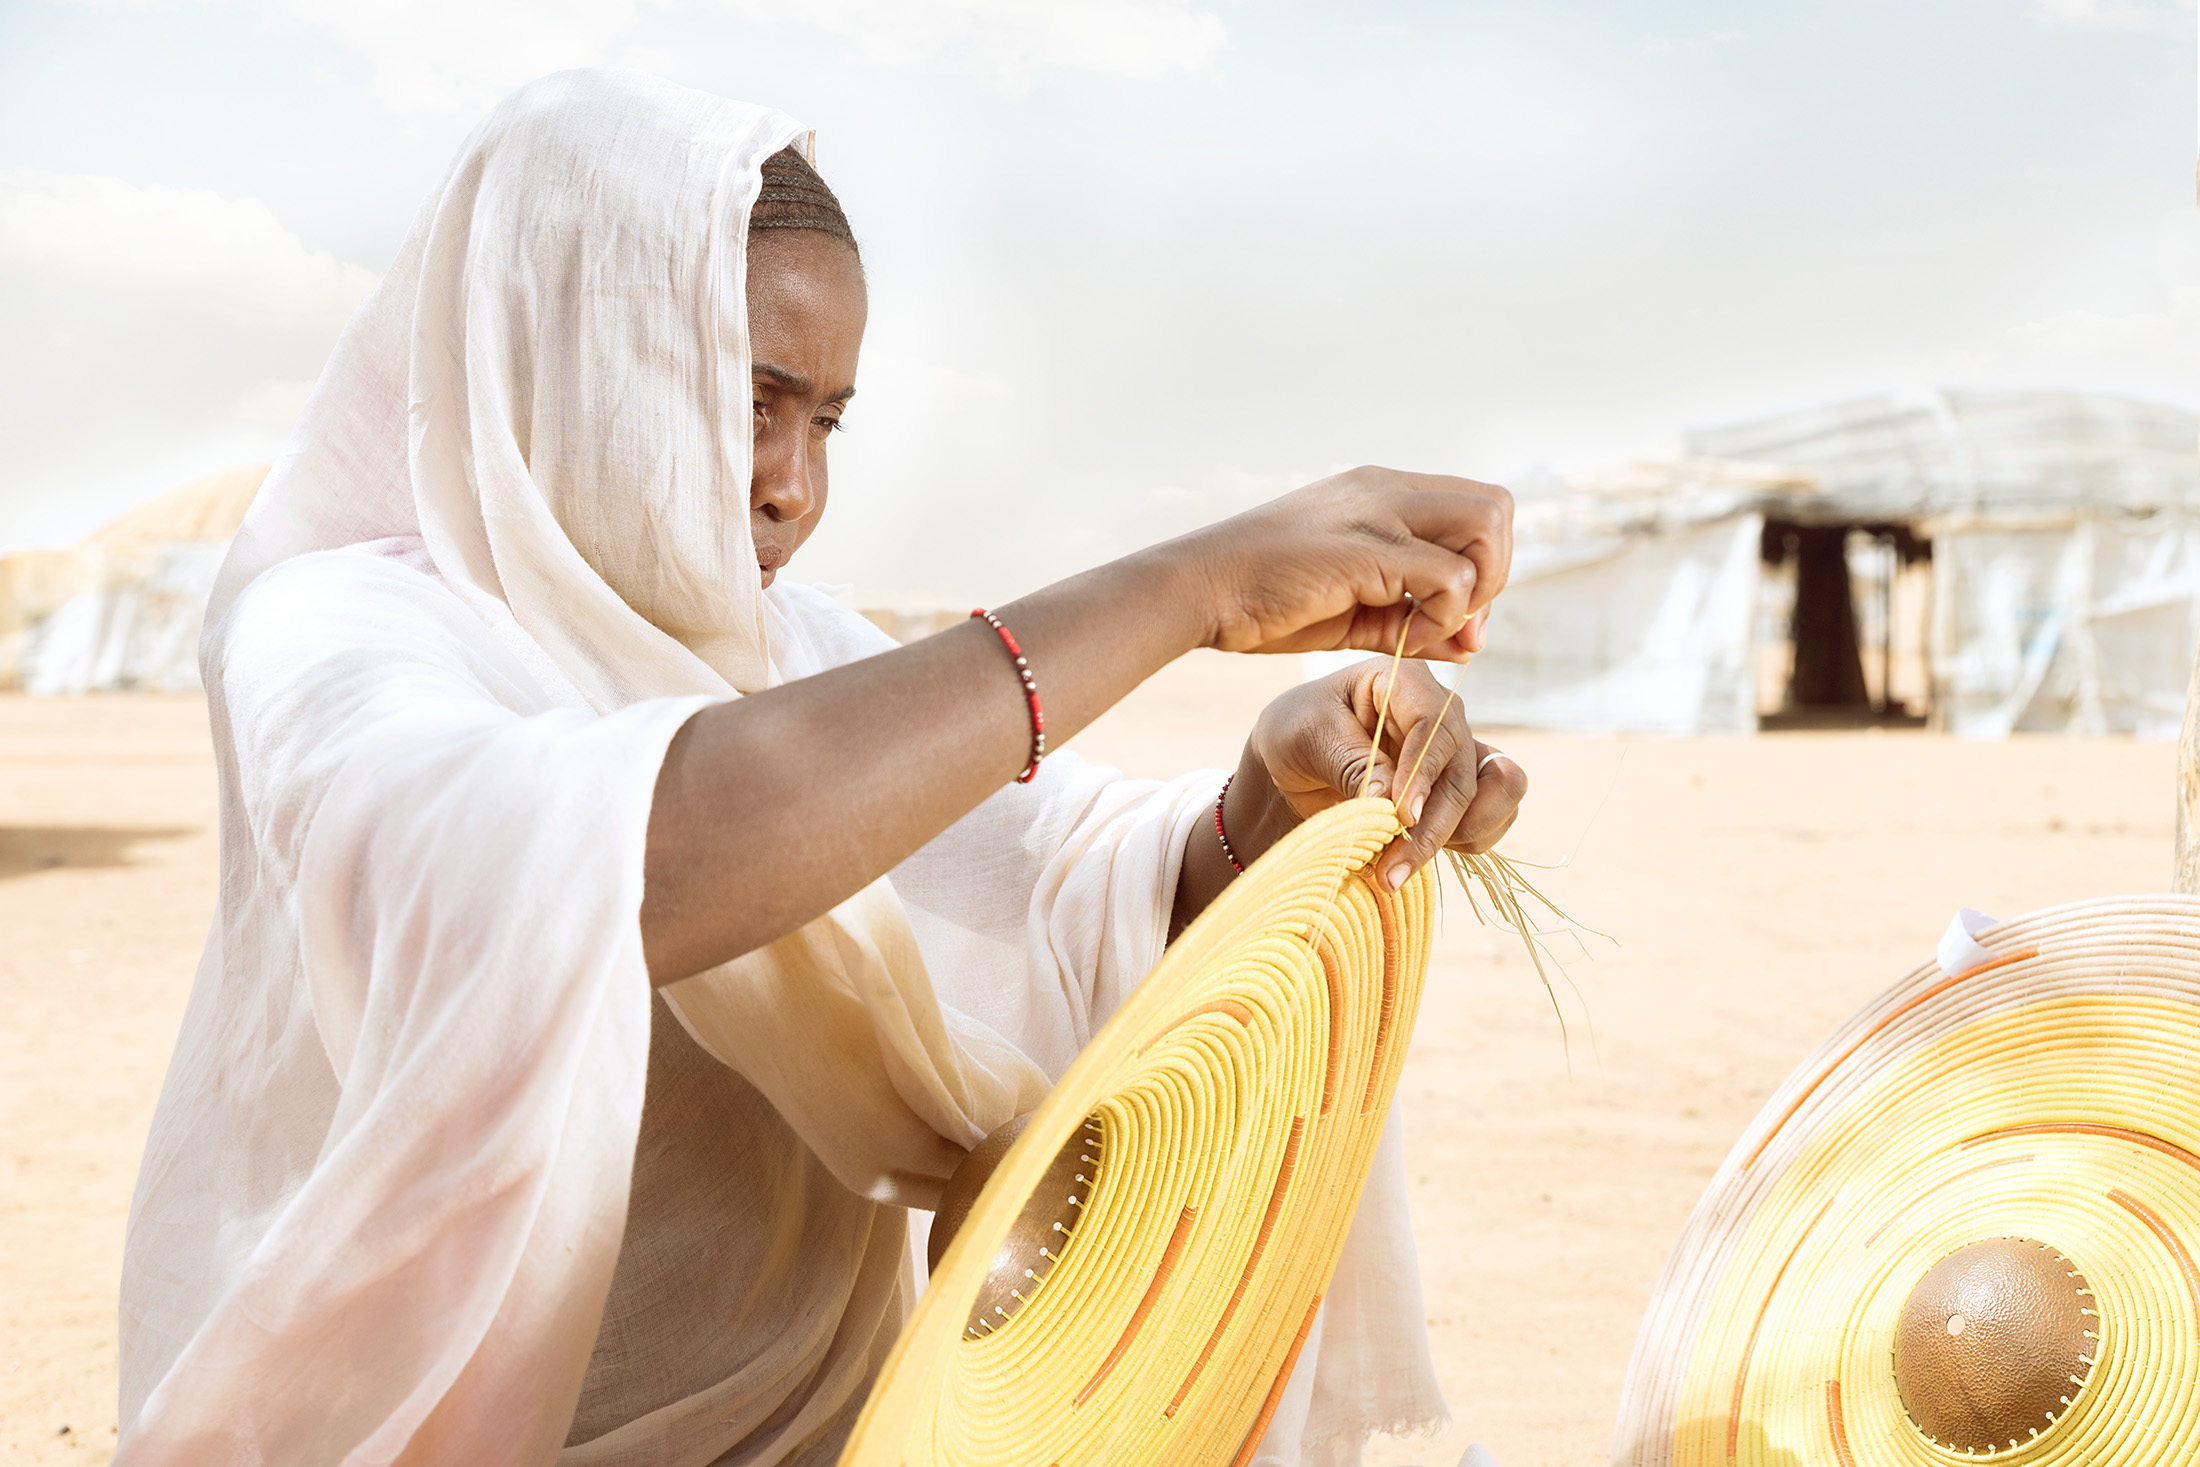 - 'Weaving for Change' reflects the preservation of an old age artisan trade of the Tuareg community from Northern Mali of whom some are living as refugees in Burkina Faso. Behind every handcrafted lamp you will find the Tuareg heritage. The design combines unique artisanal skills and basketry techniques carried out by Tuareg and Fulani/ Peulh women. Through creative collaborations such as these the refugee artisans living in extreme poverty may have an opportunity to change their lives. This collaboration also aligns with A A K S' brand values of ethical production.We invite you to visit our blog to discover more about the making process.